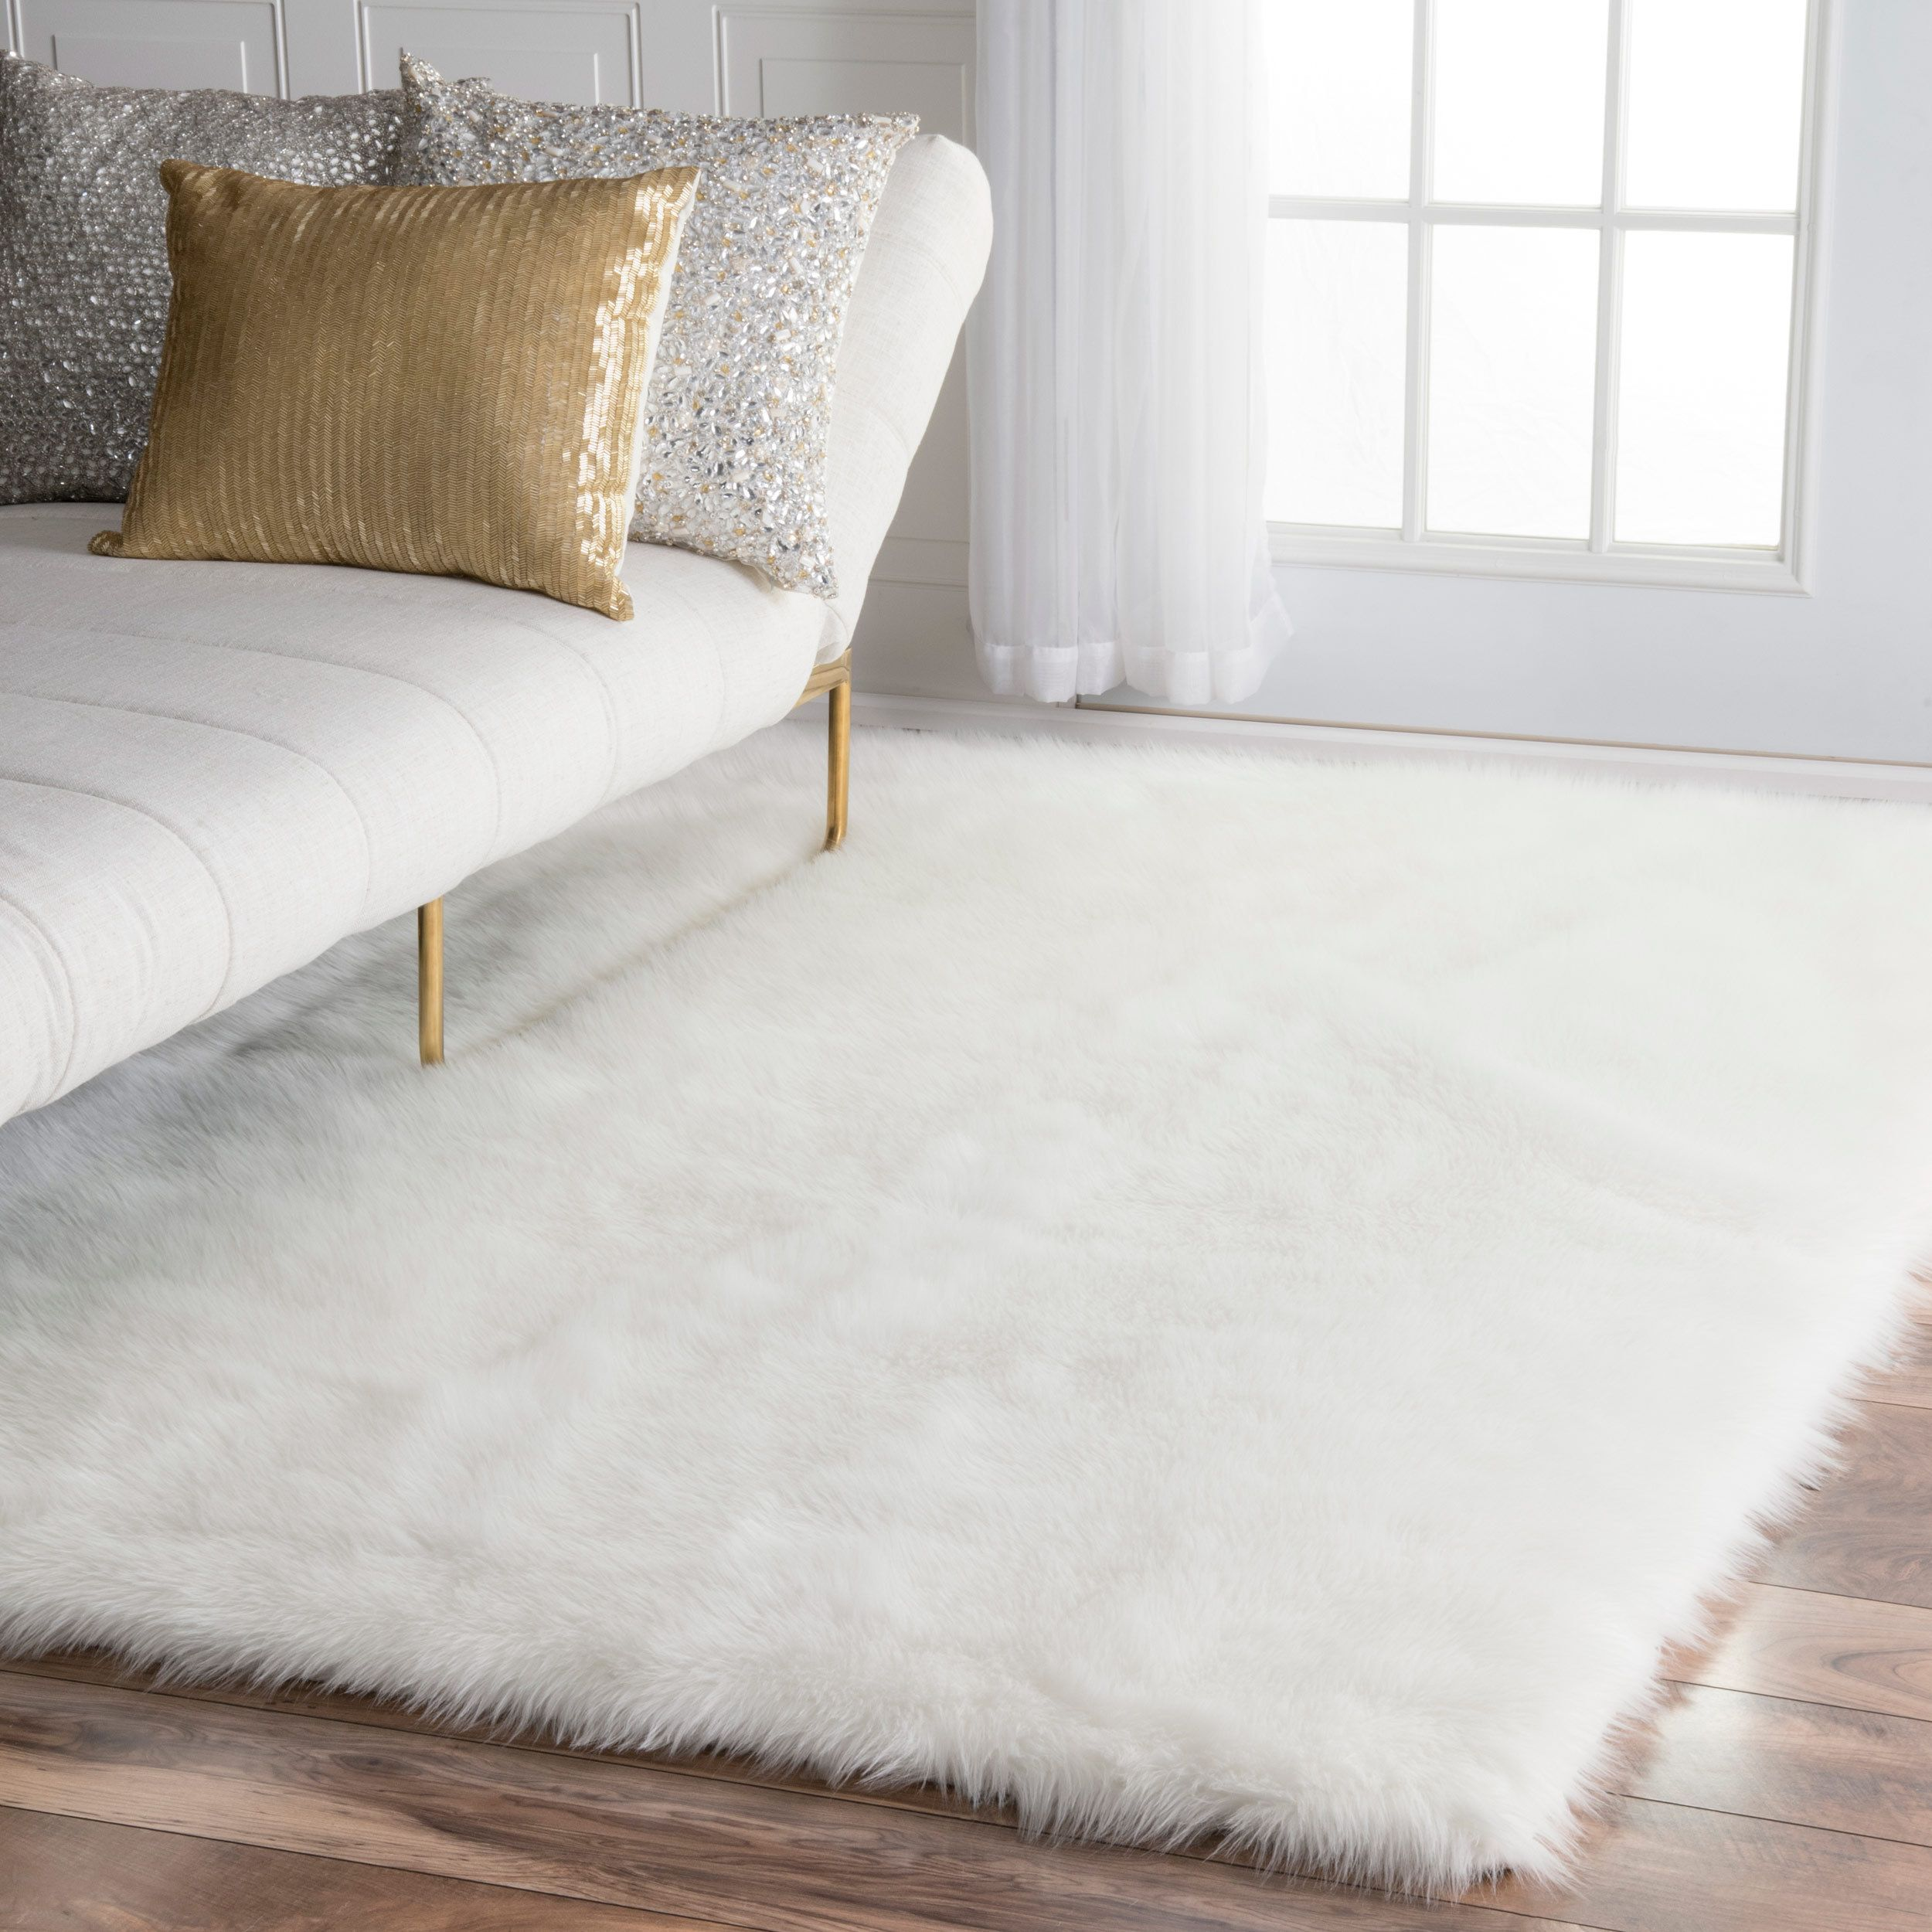 Nuloom Faux Flokati Sheepskin Soft And Plush Cloud White Shag Area Rug White Rug Bedroom White Shag Rug Fur Rug Bedroom